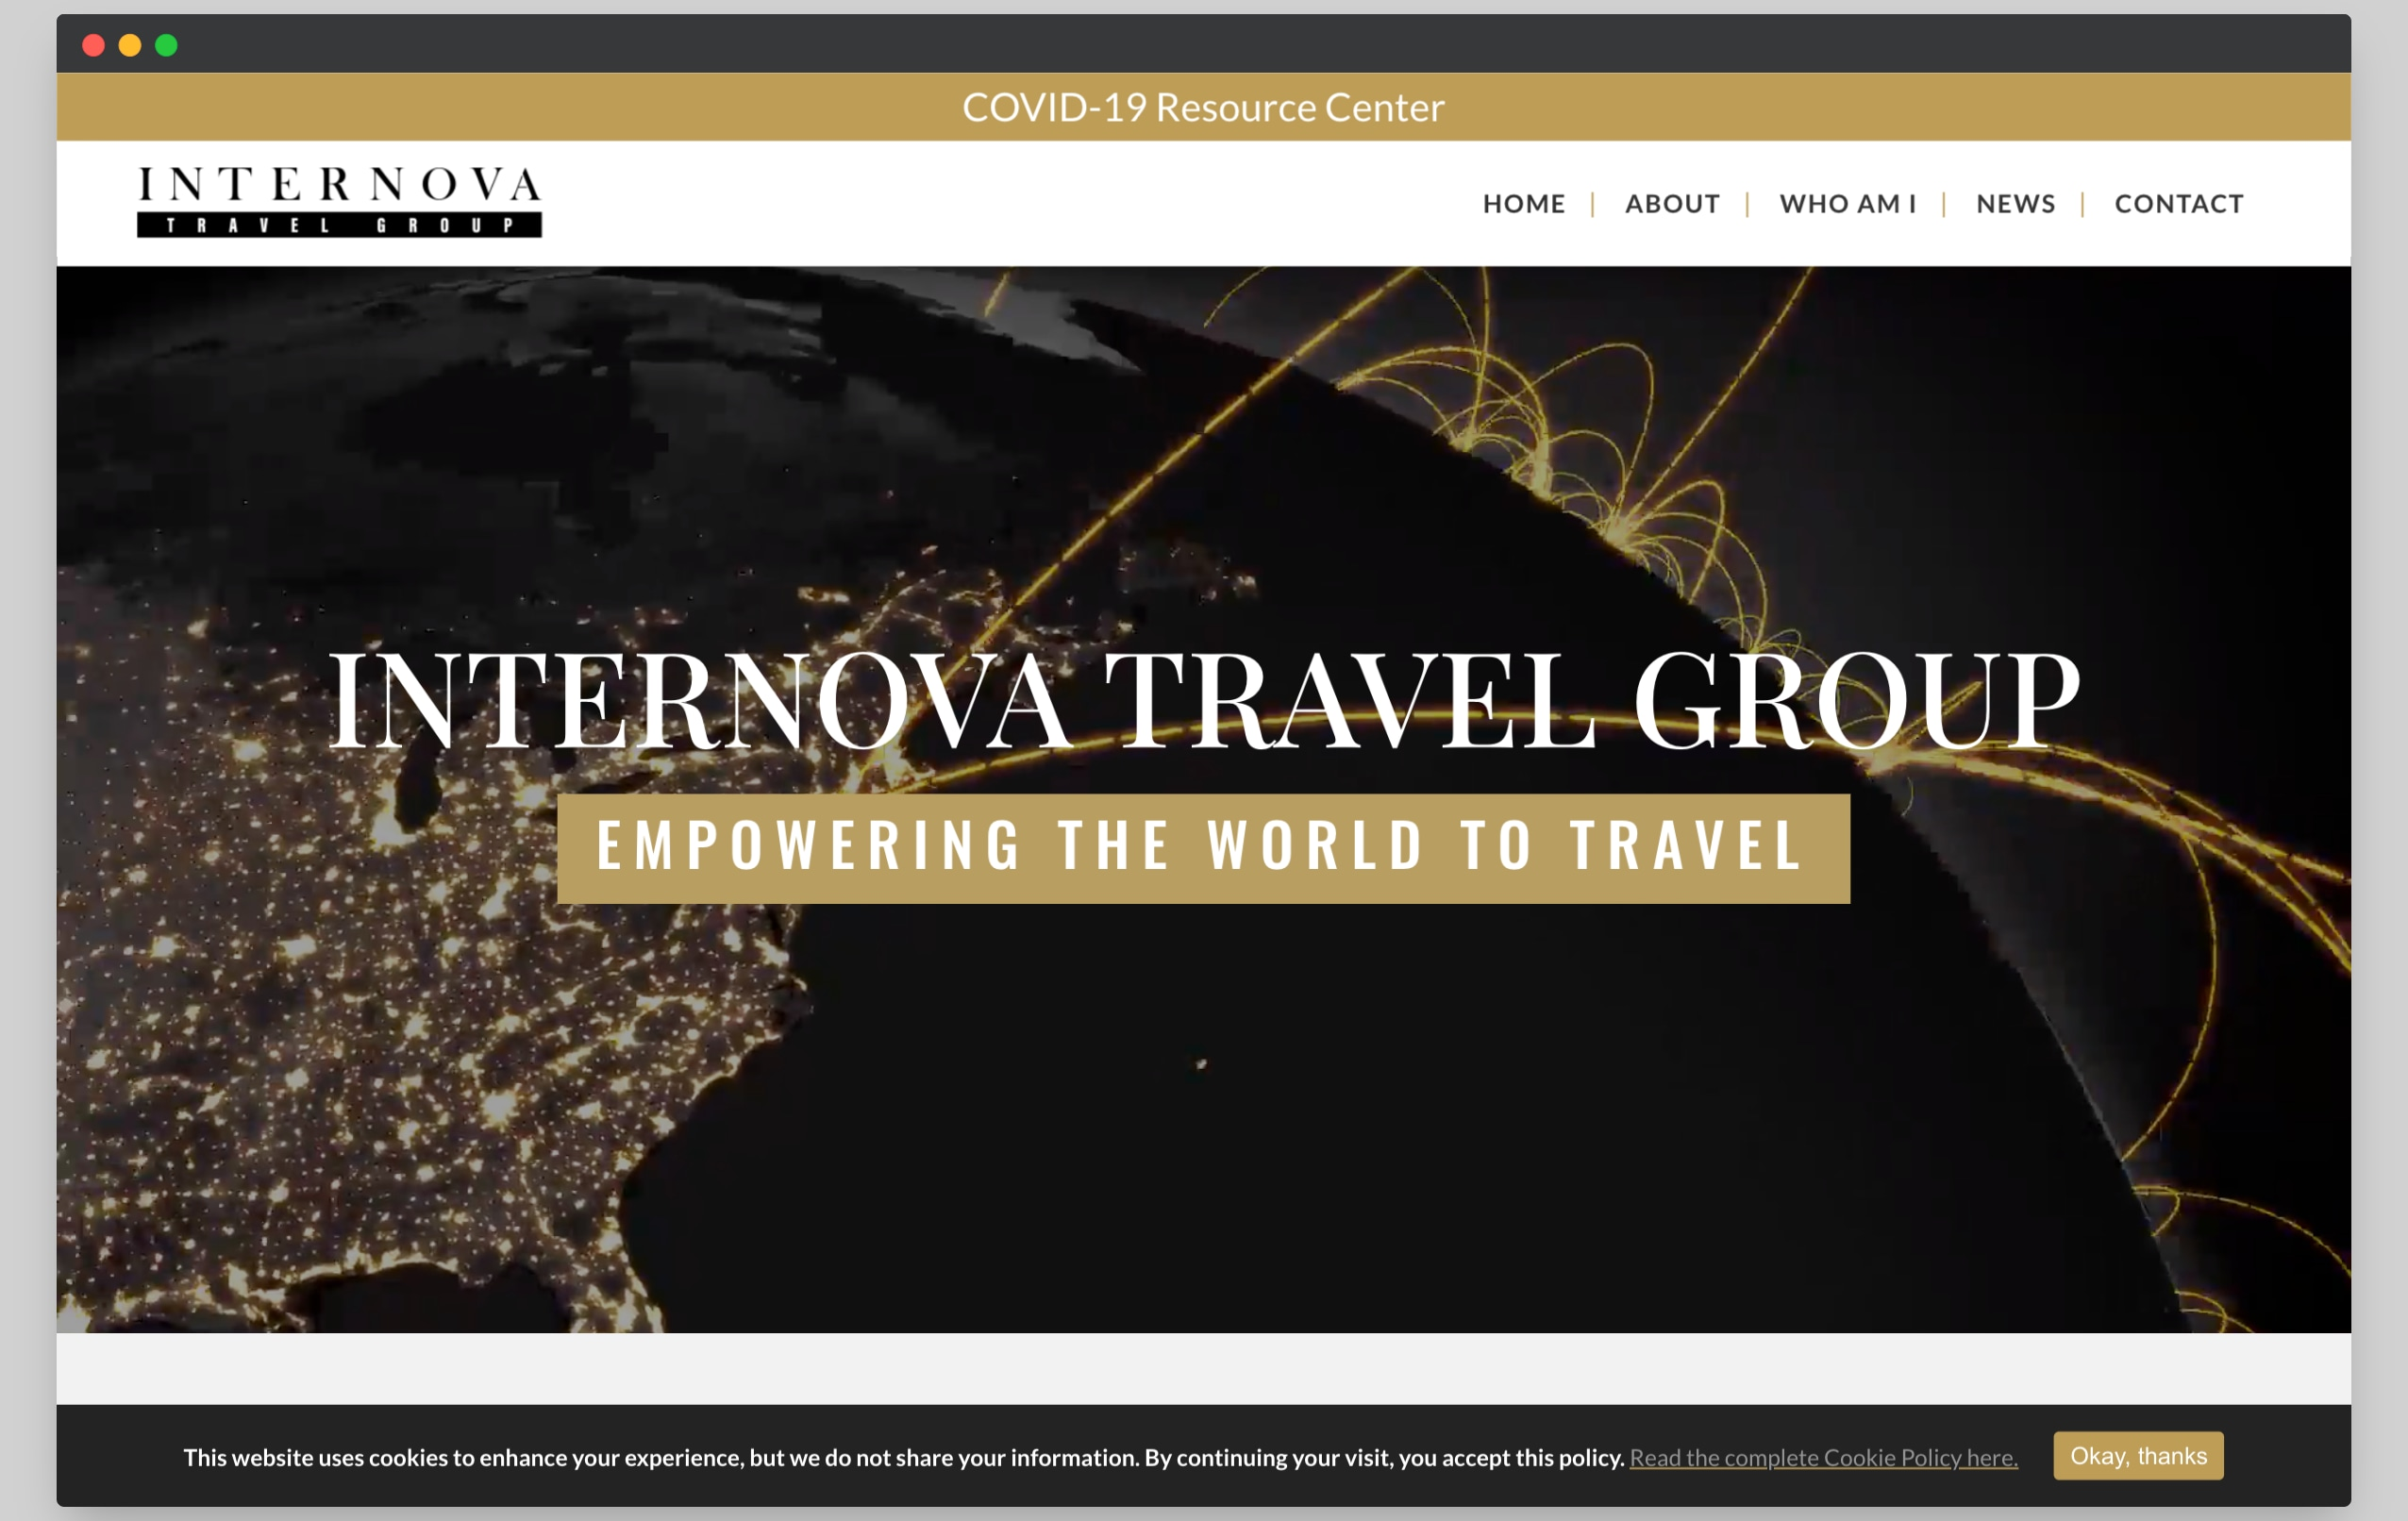 Travel Leaders Group / Internova Travel Group